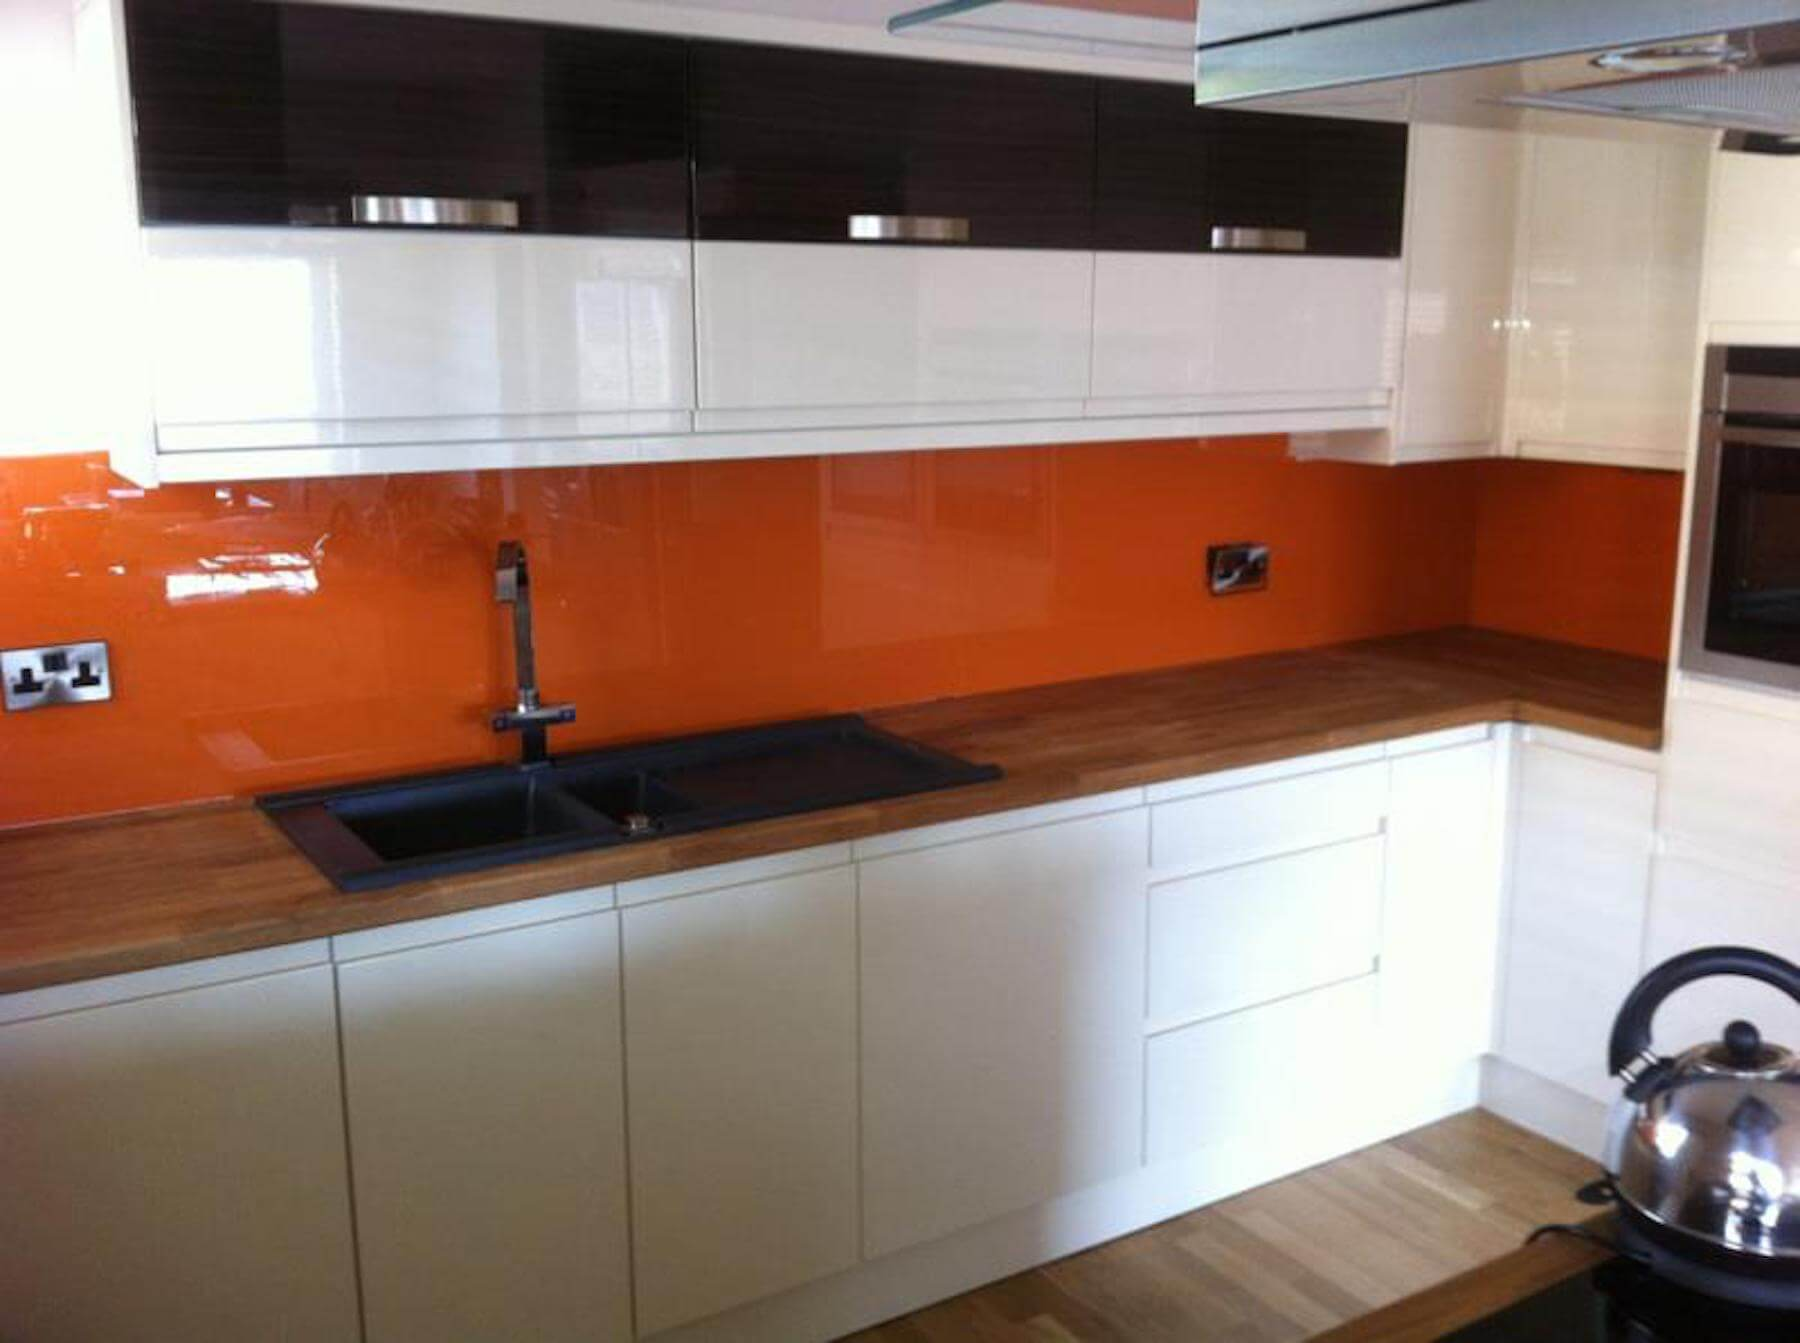 Orange splash backs in kitchen